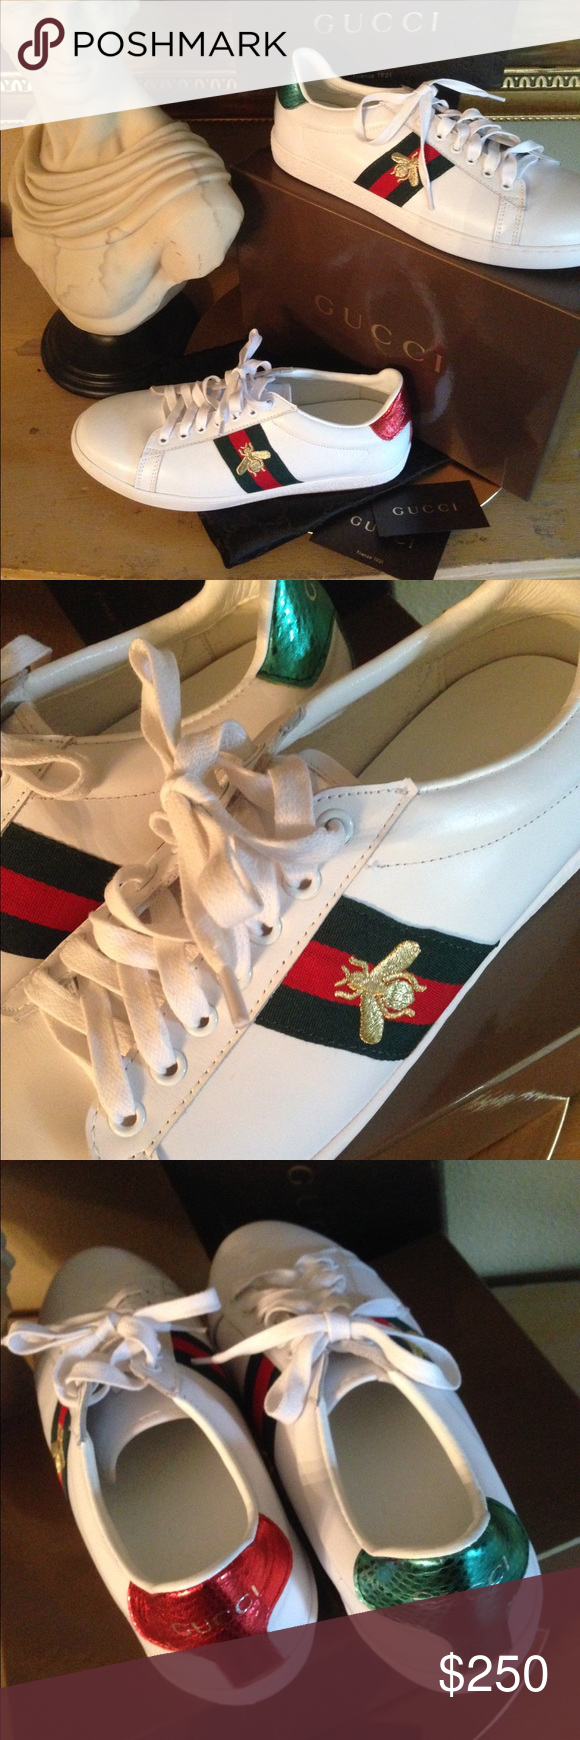 ab6af601f Authentic Gucci Ace Sneaker Authentic Gucci Ace Embroidered Low Top Sneaker,  With Gucci's Iconic Gold